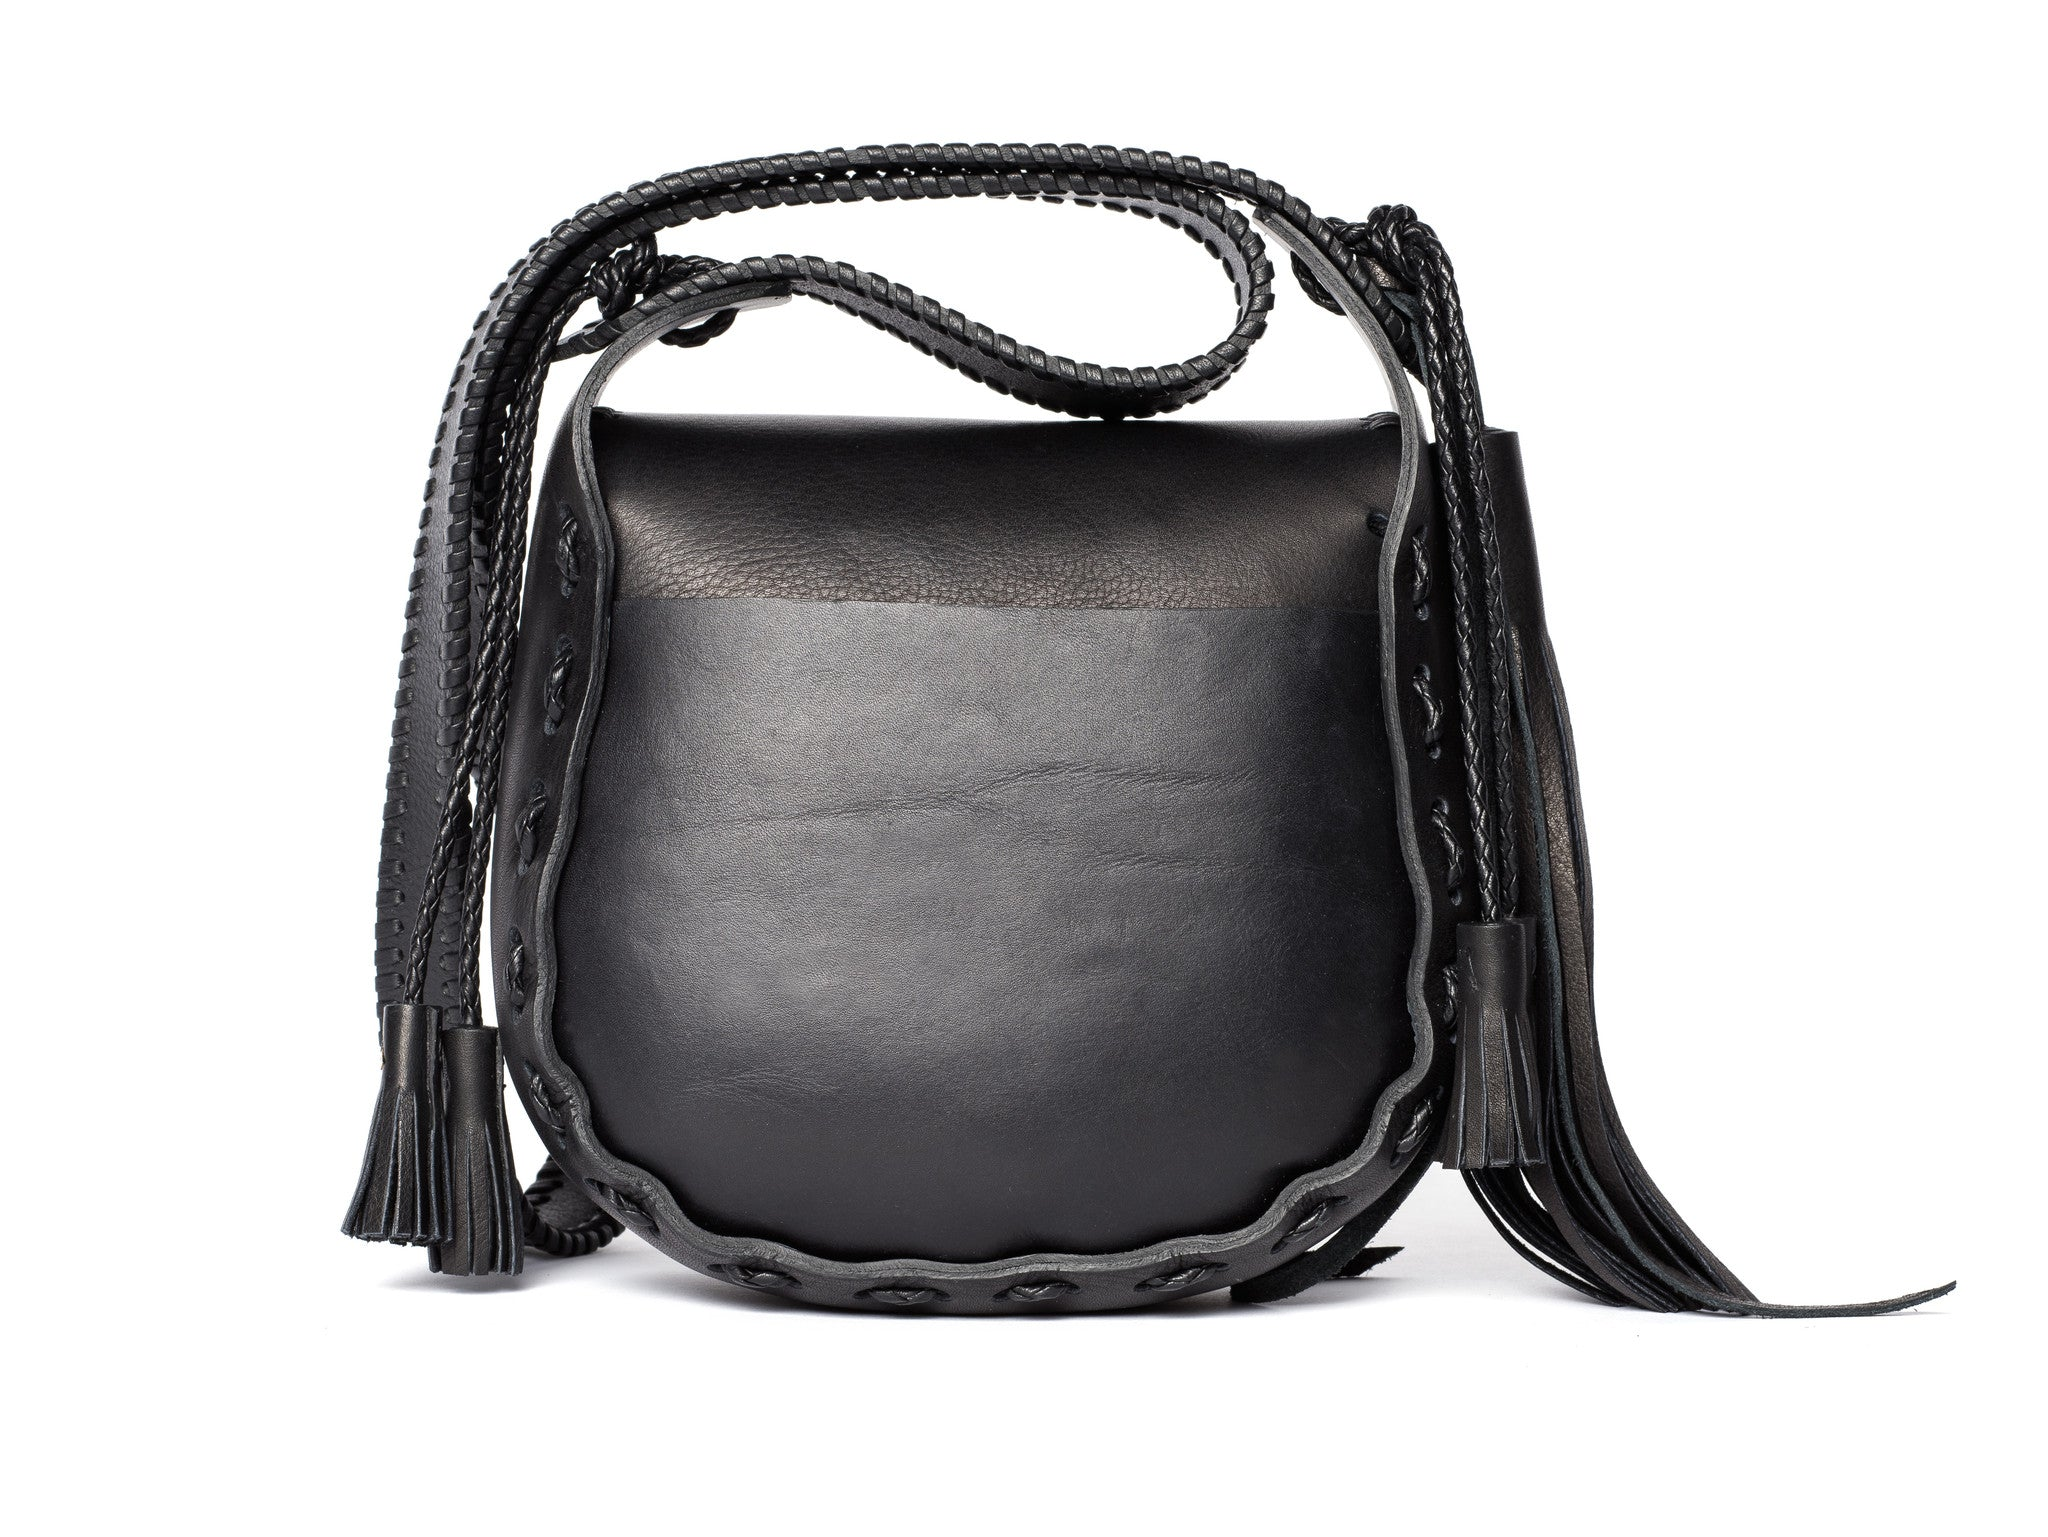 Small Whipstitch Satchel Black Leather Bag Wendy Nichol Handbag Purse Designer Handmade in NYC New York City Whipstitch Strap Durable Comfortable Cross Body Everyday Simple Elegant Medium Size Bag Fringe Tassel Envelope Flap Magnet Magnetic Closure Interior Pocket outside pocket Classic Saddle Satchel High Quality Leather